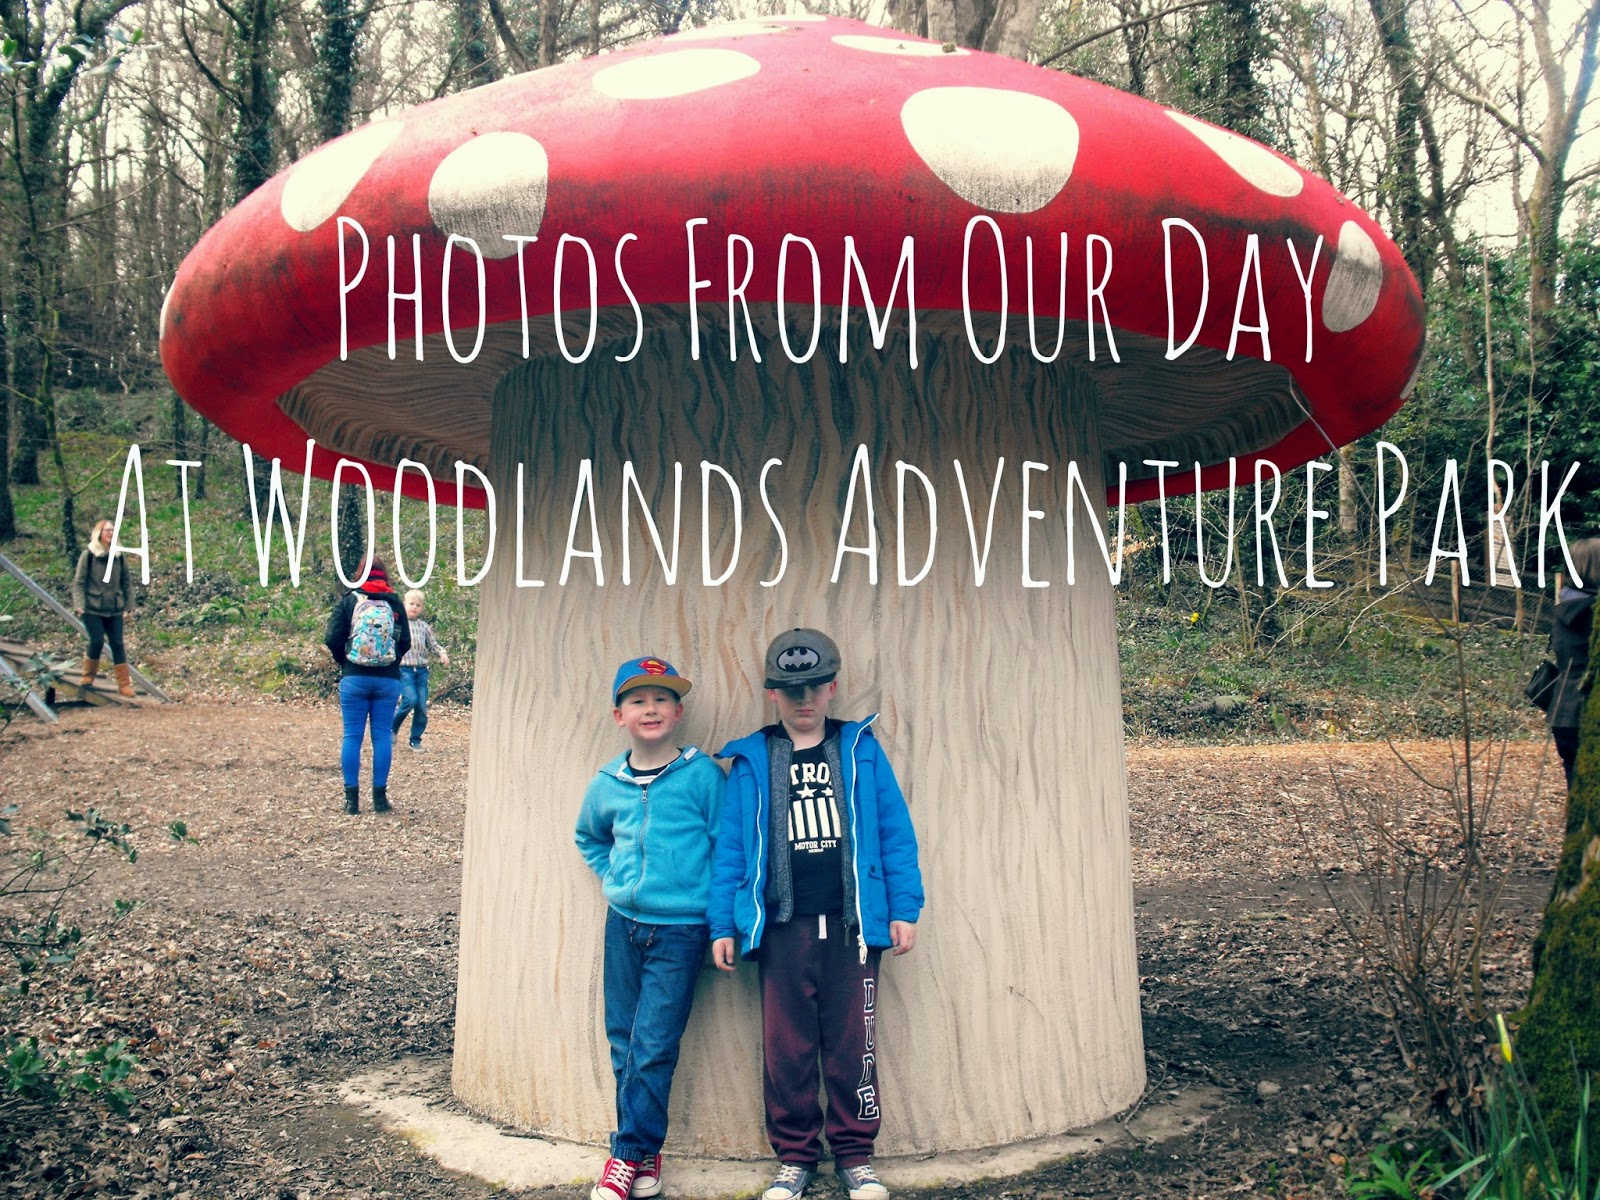 woodlands, devon, adventure, park, mushroom, parent, blogger